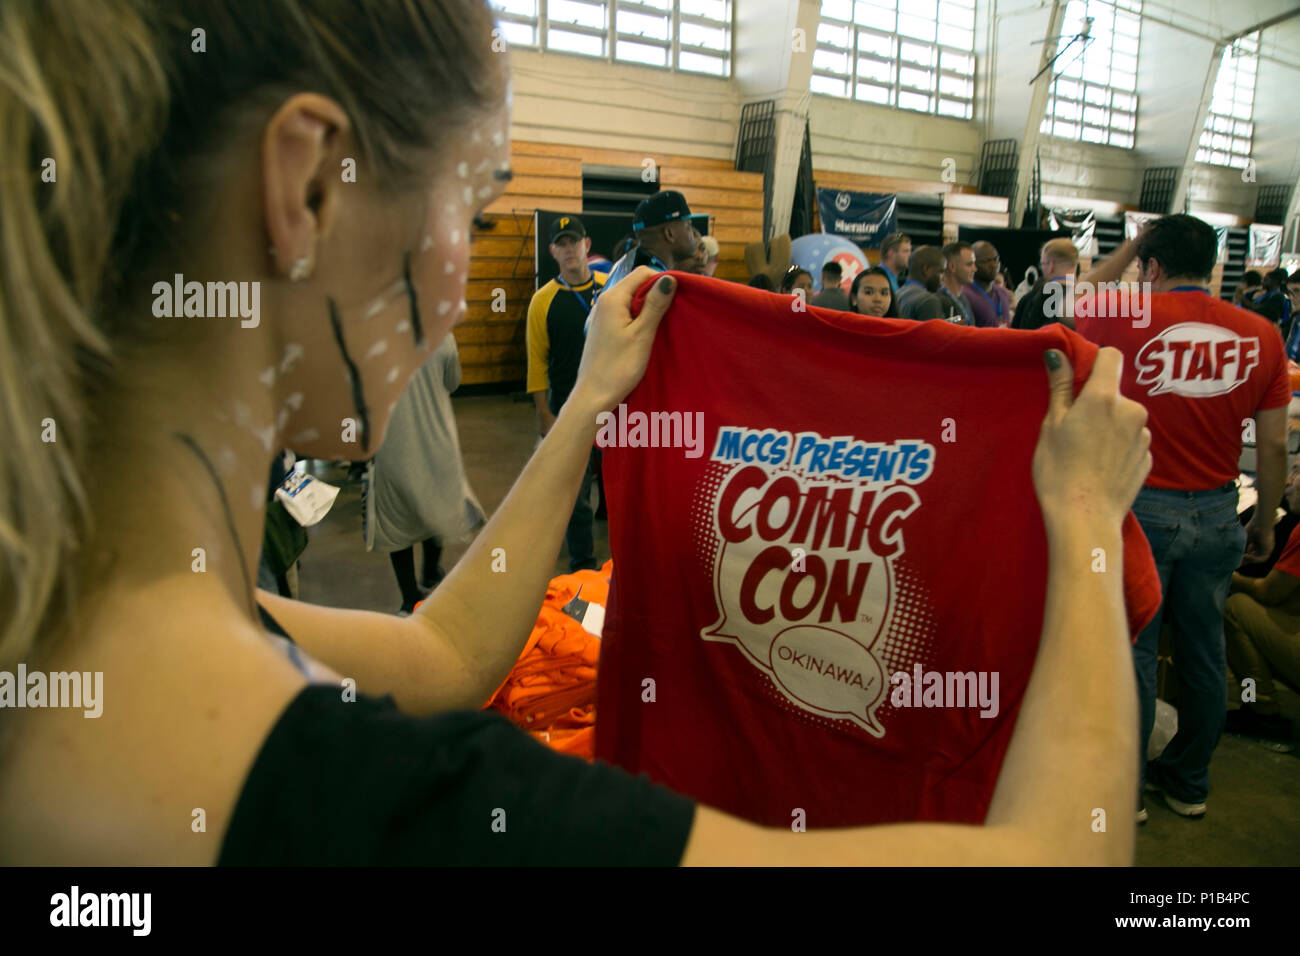 A Comic Con Attendee Views A T Shirt October 15 During Comic Con On